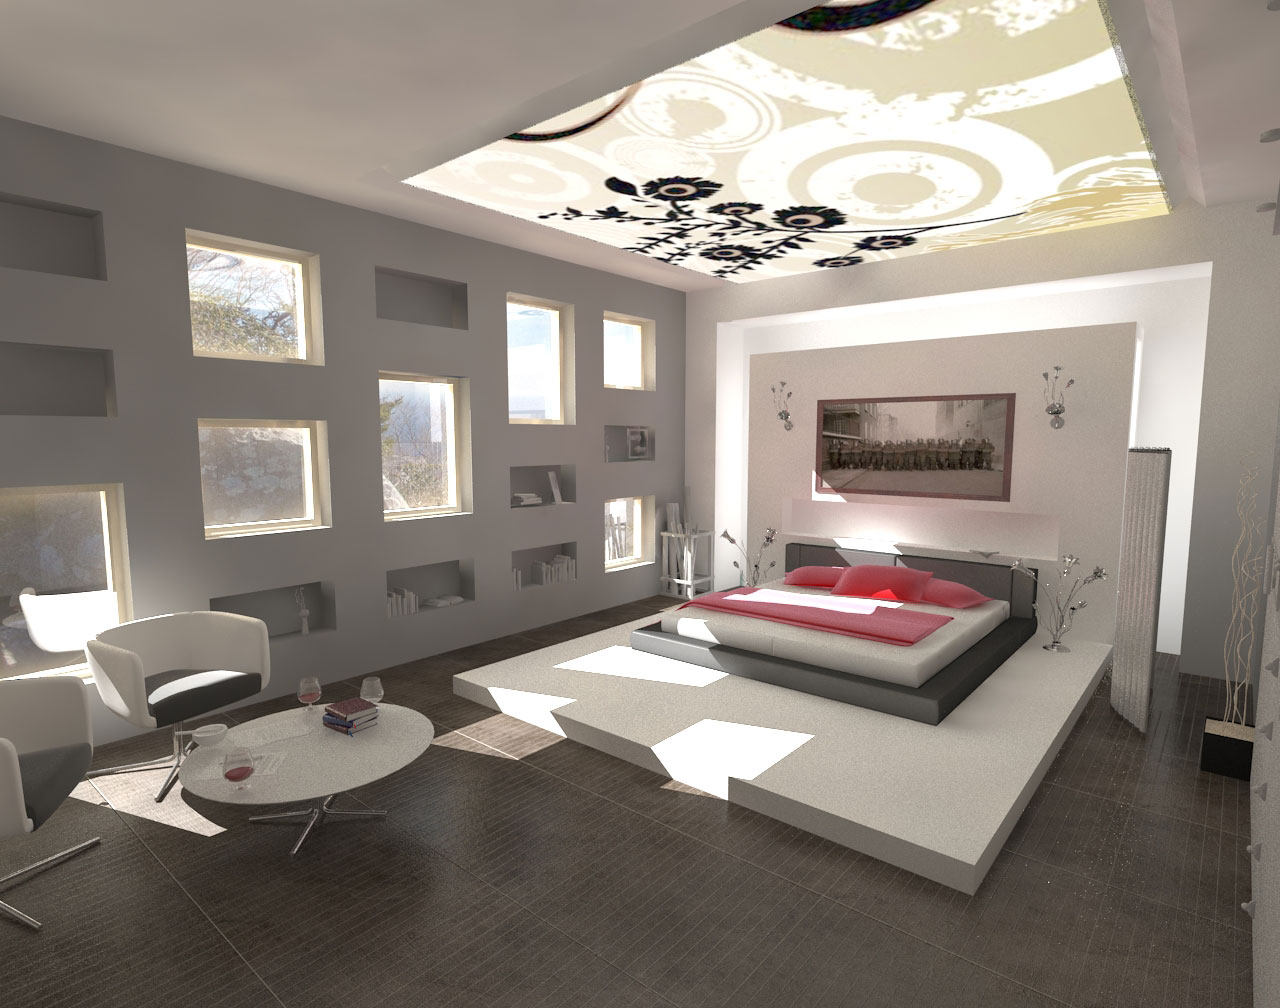 Fabulous Modern Home Interior Design Bedrooms 1280 x 1008 · 183 kB · jpeg